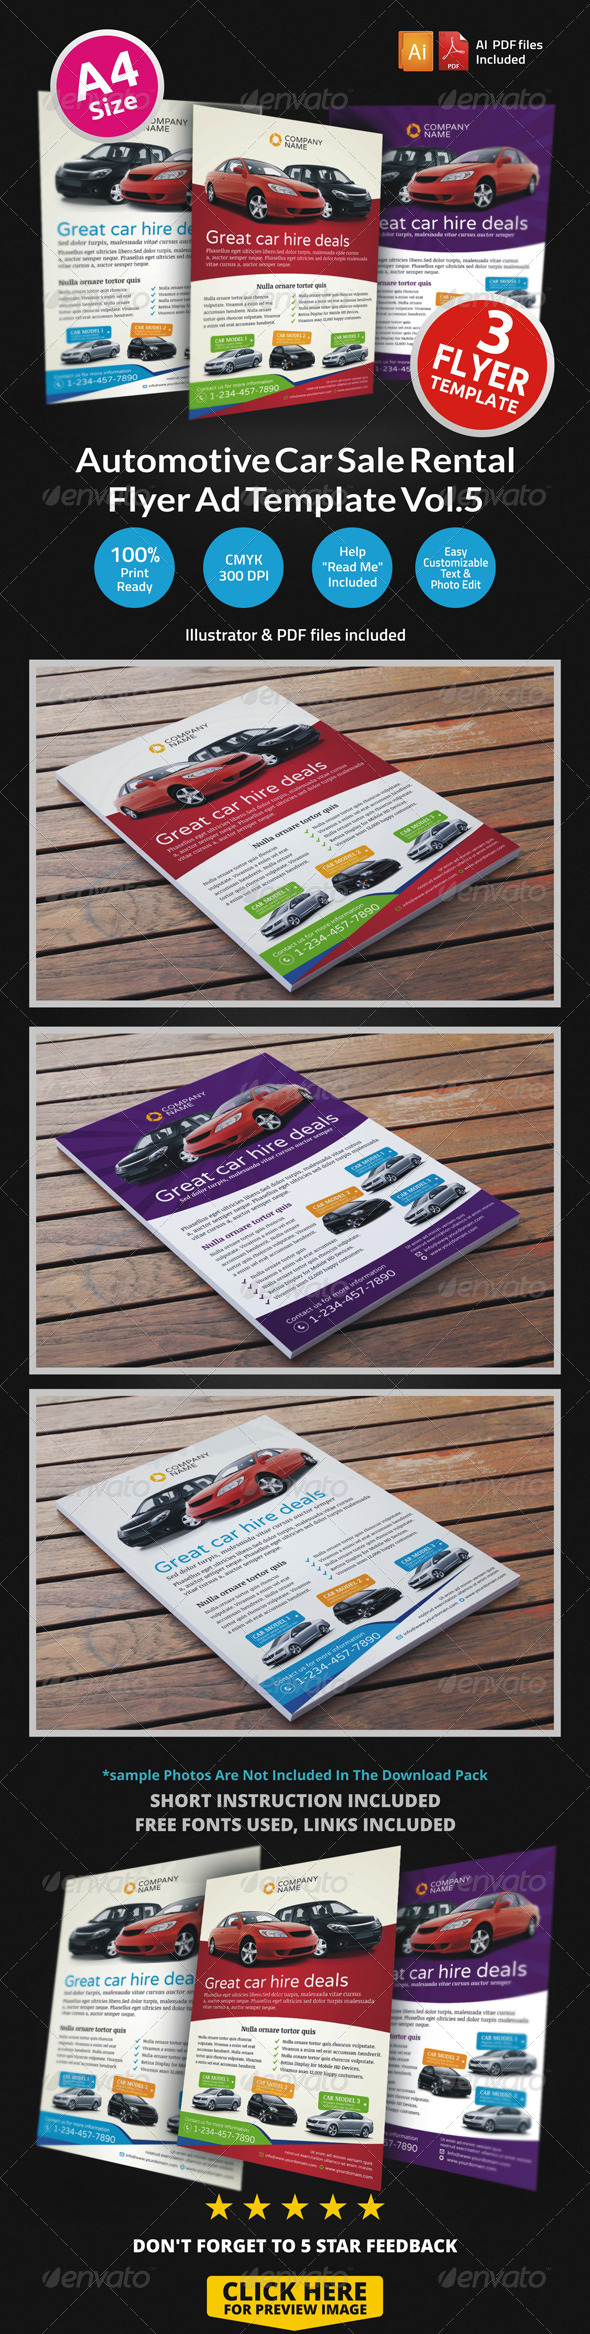 GraphicRiver Automotive Car Sale Rental Flyer Ad Template Vol.5 6805249